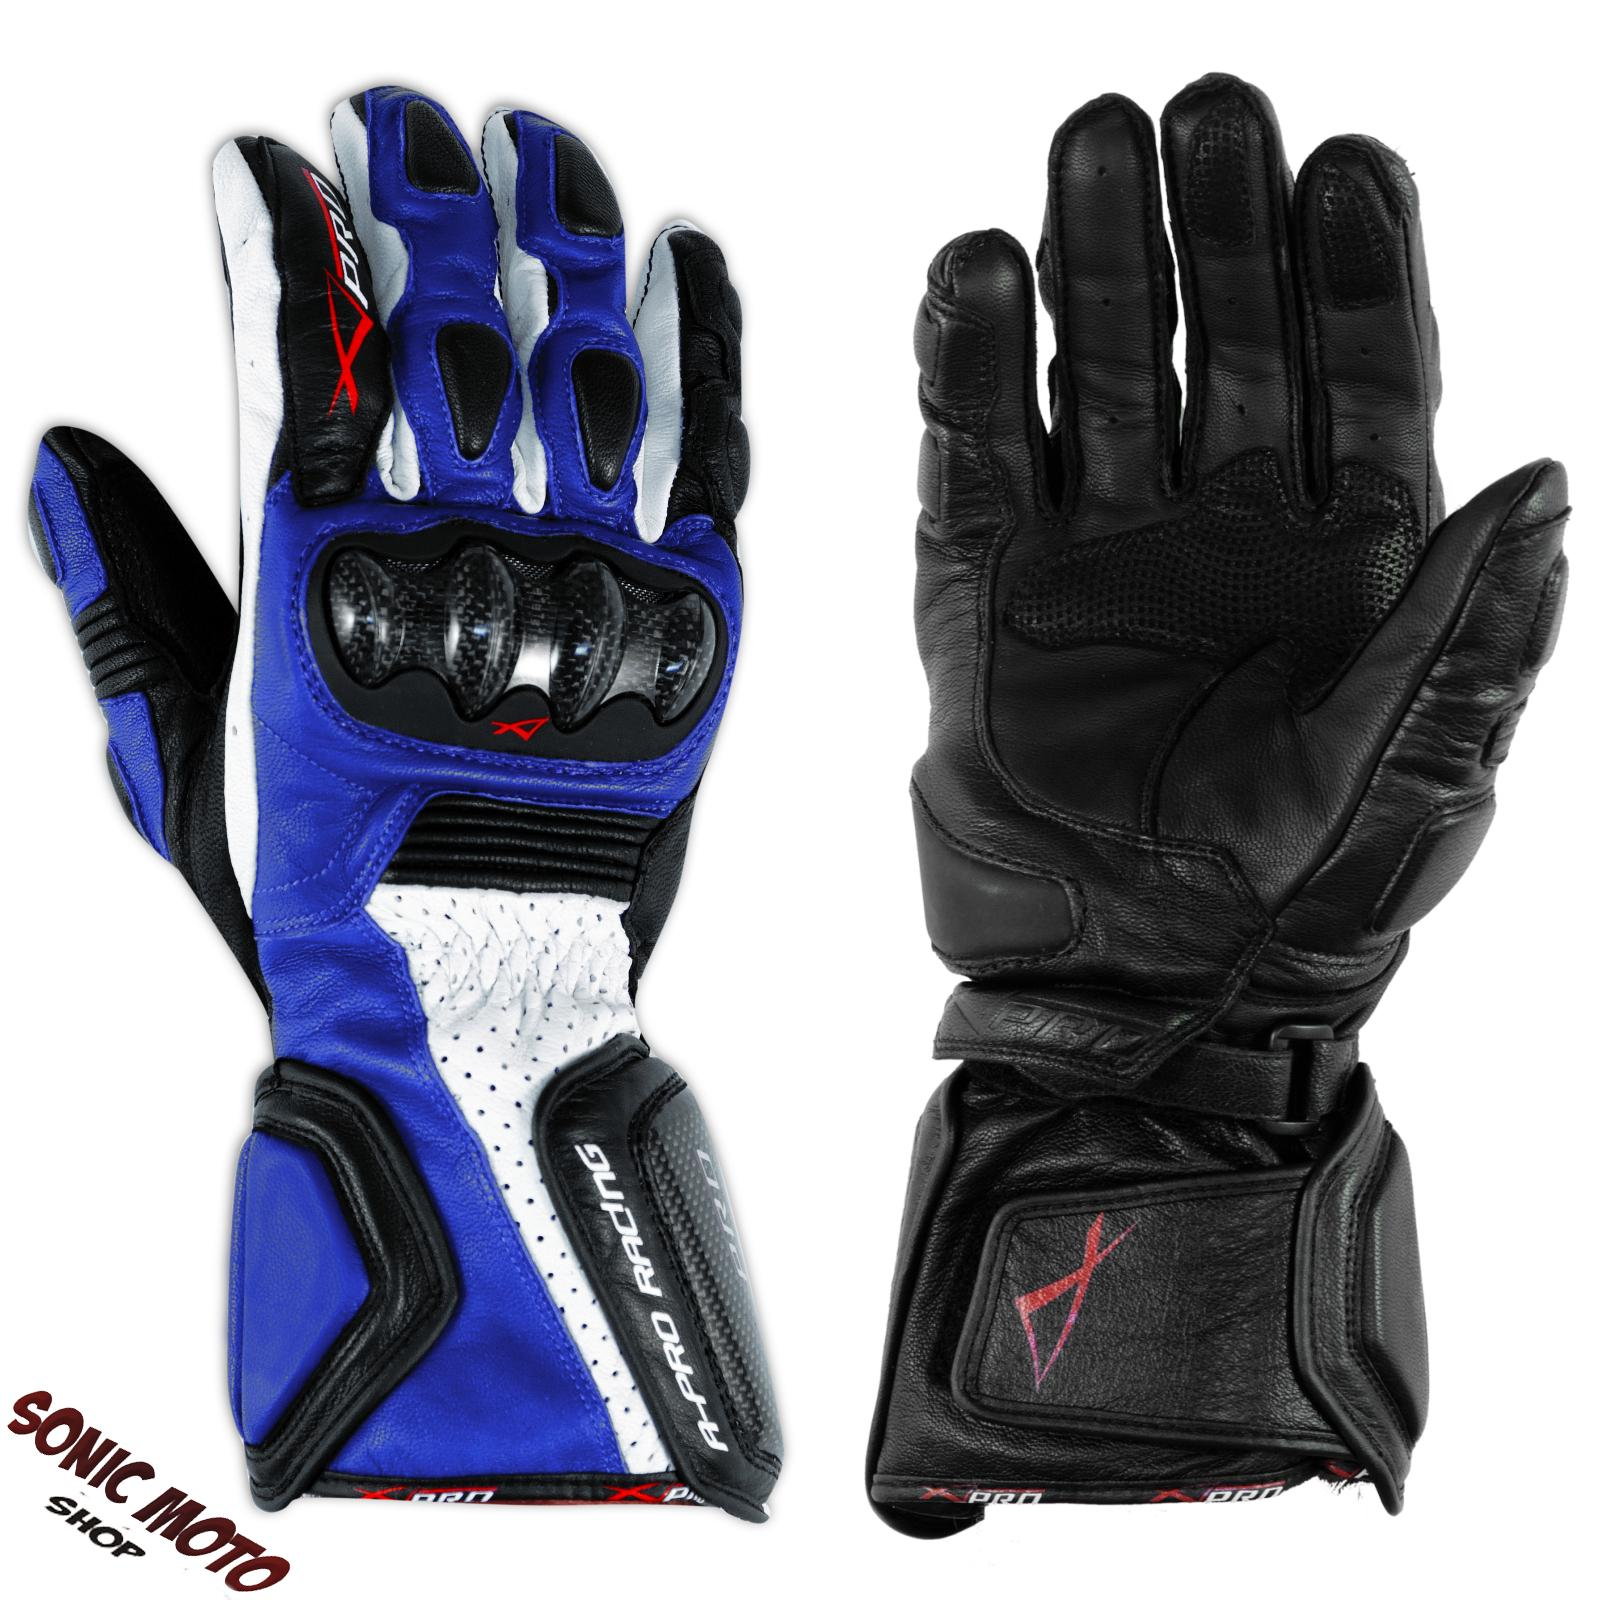 paire cuir gants profesional motard piste route moto protections carbone touring ebay. Black Bedroom Furniture Sets. Home Design Ideas